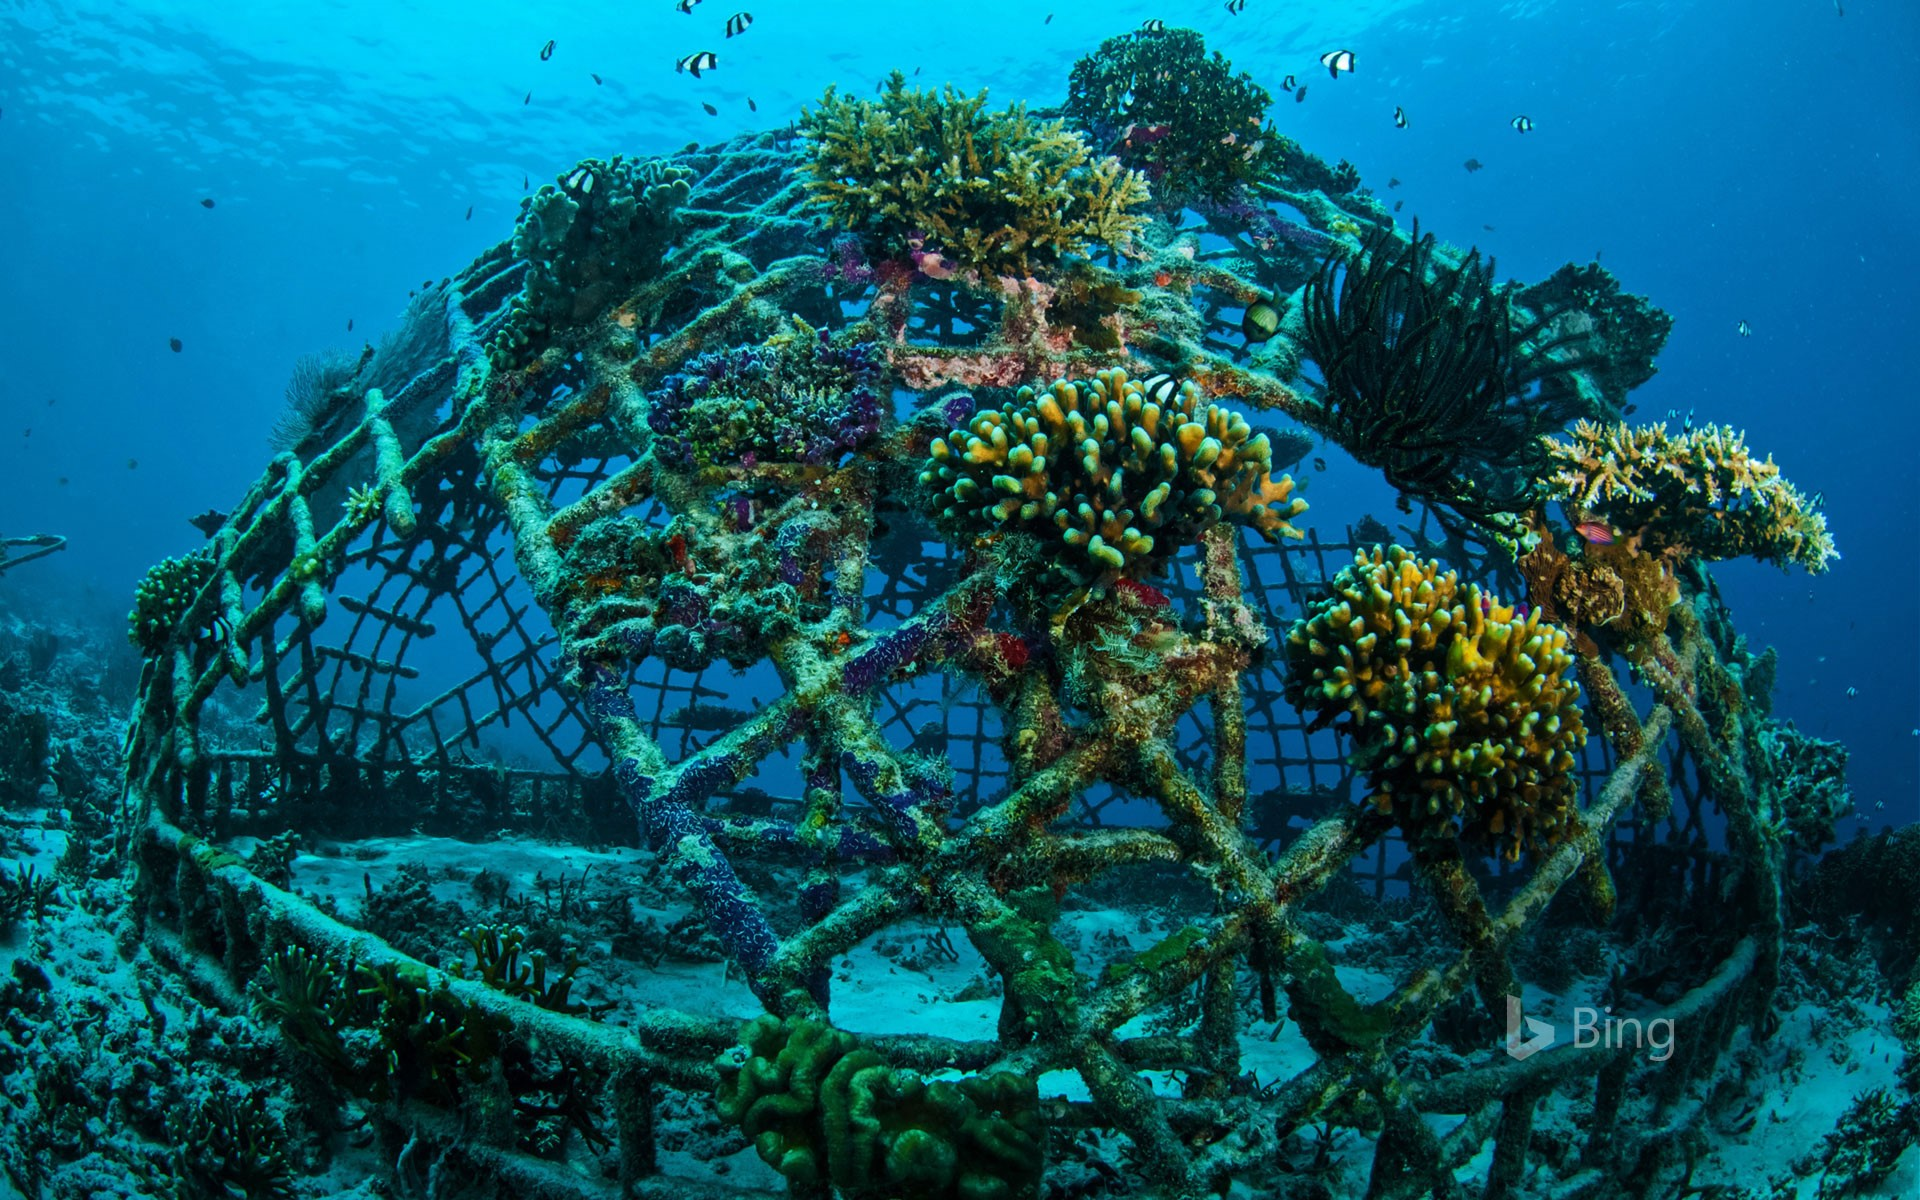 Biorock artificial reef off the Gili Islands, Indonesia (© fenkieandreas/Getty Images Plus)